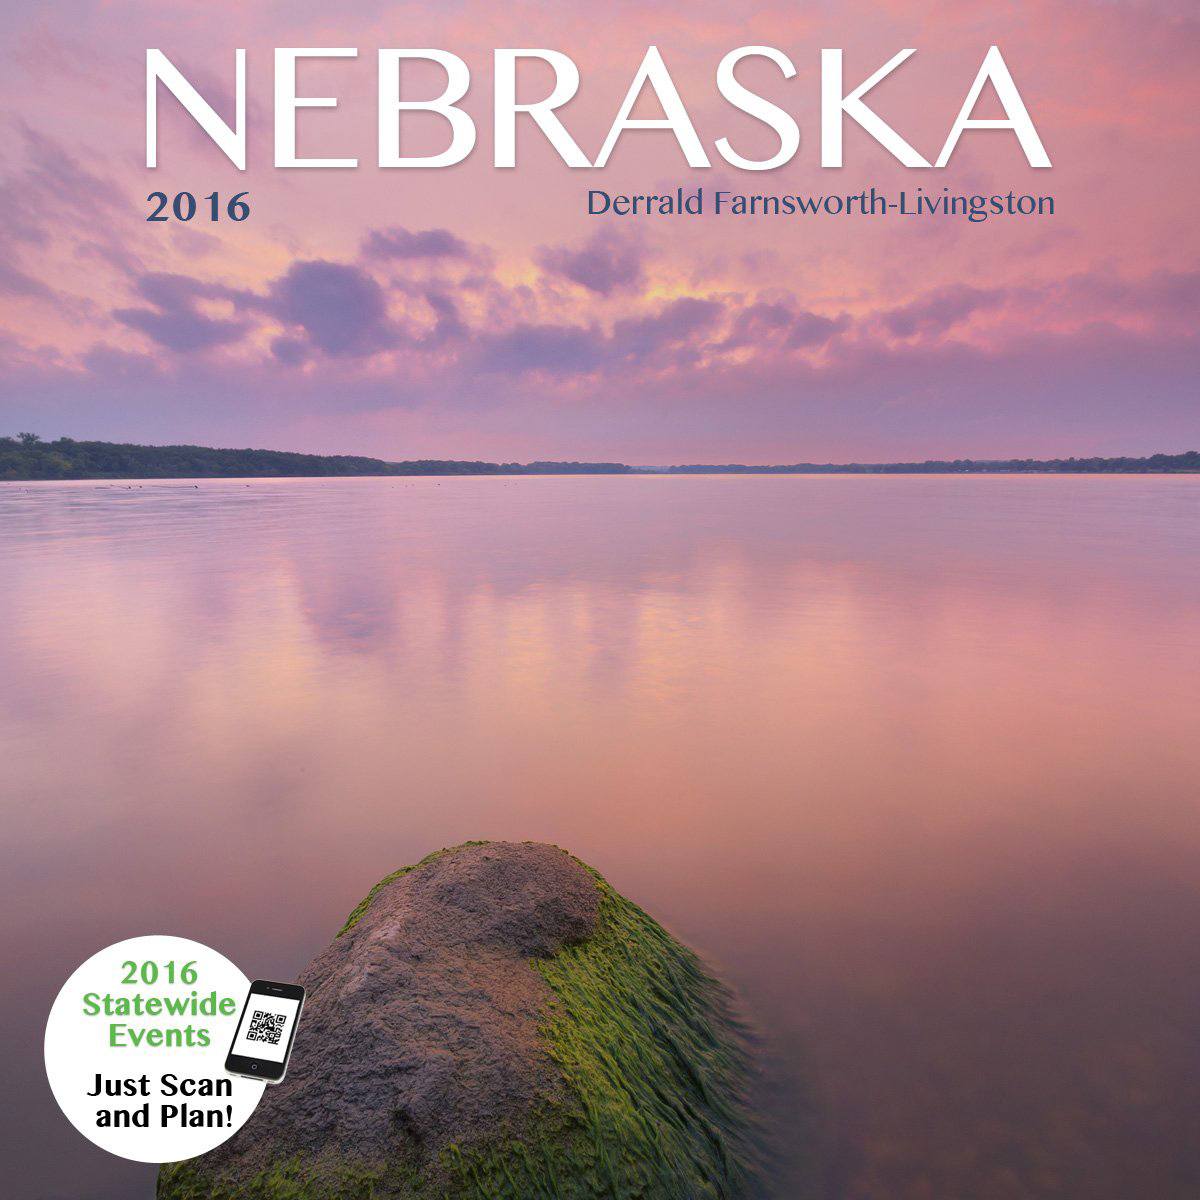 2016 Nebraska State Pride Calendar.  Sold in Costco, Amazon, and Calendar Club.  Contributed All Photography. -  Photography